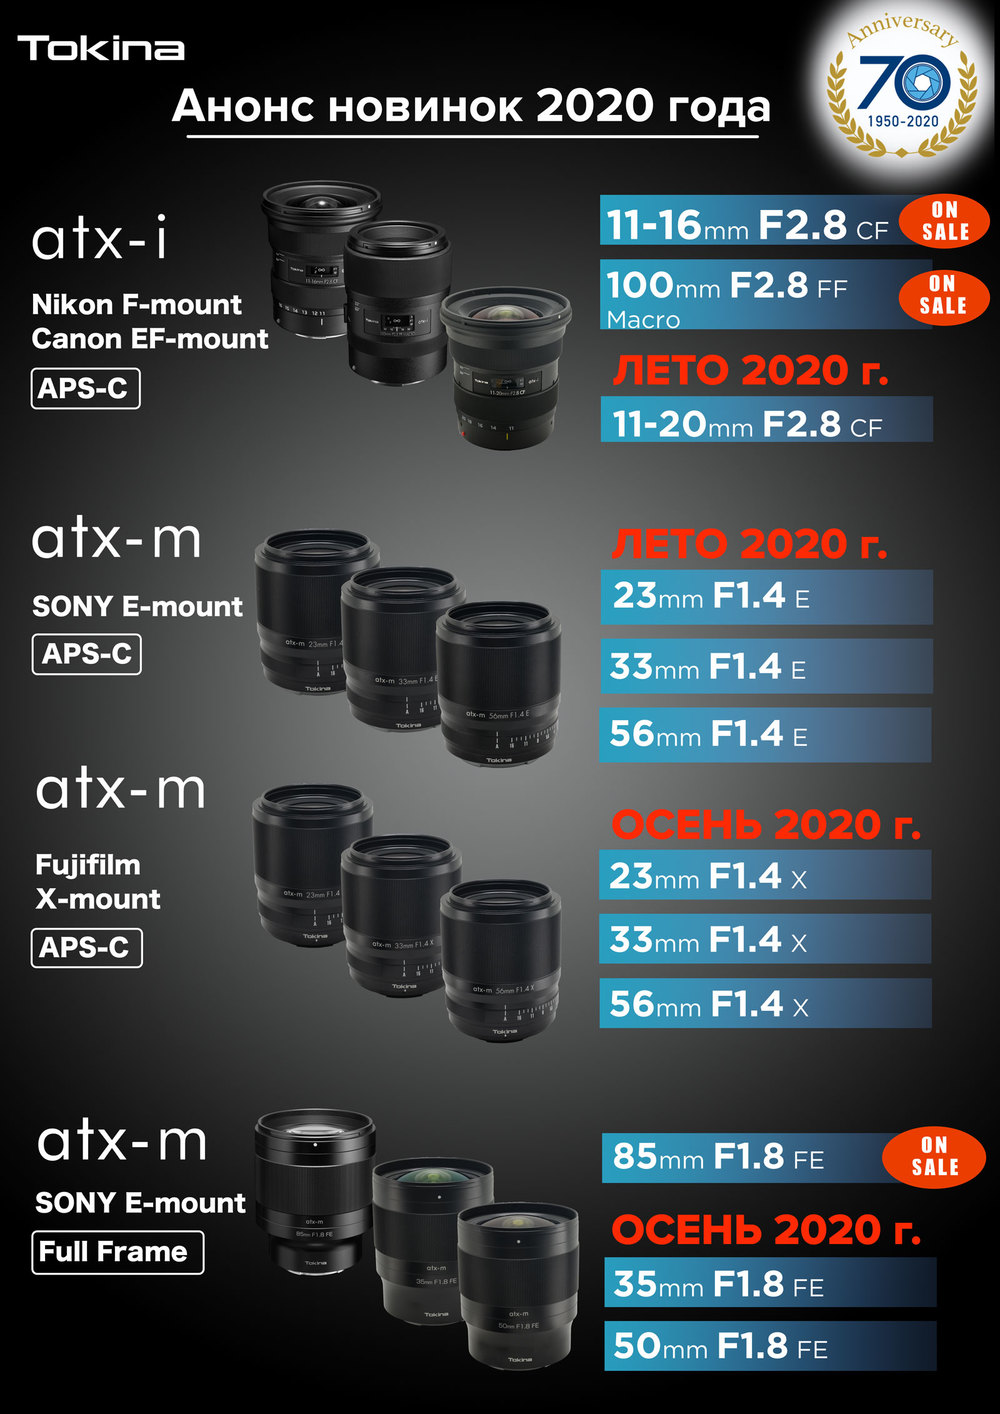 Tokina lens road map 2020